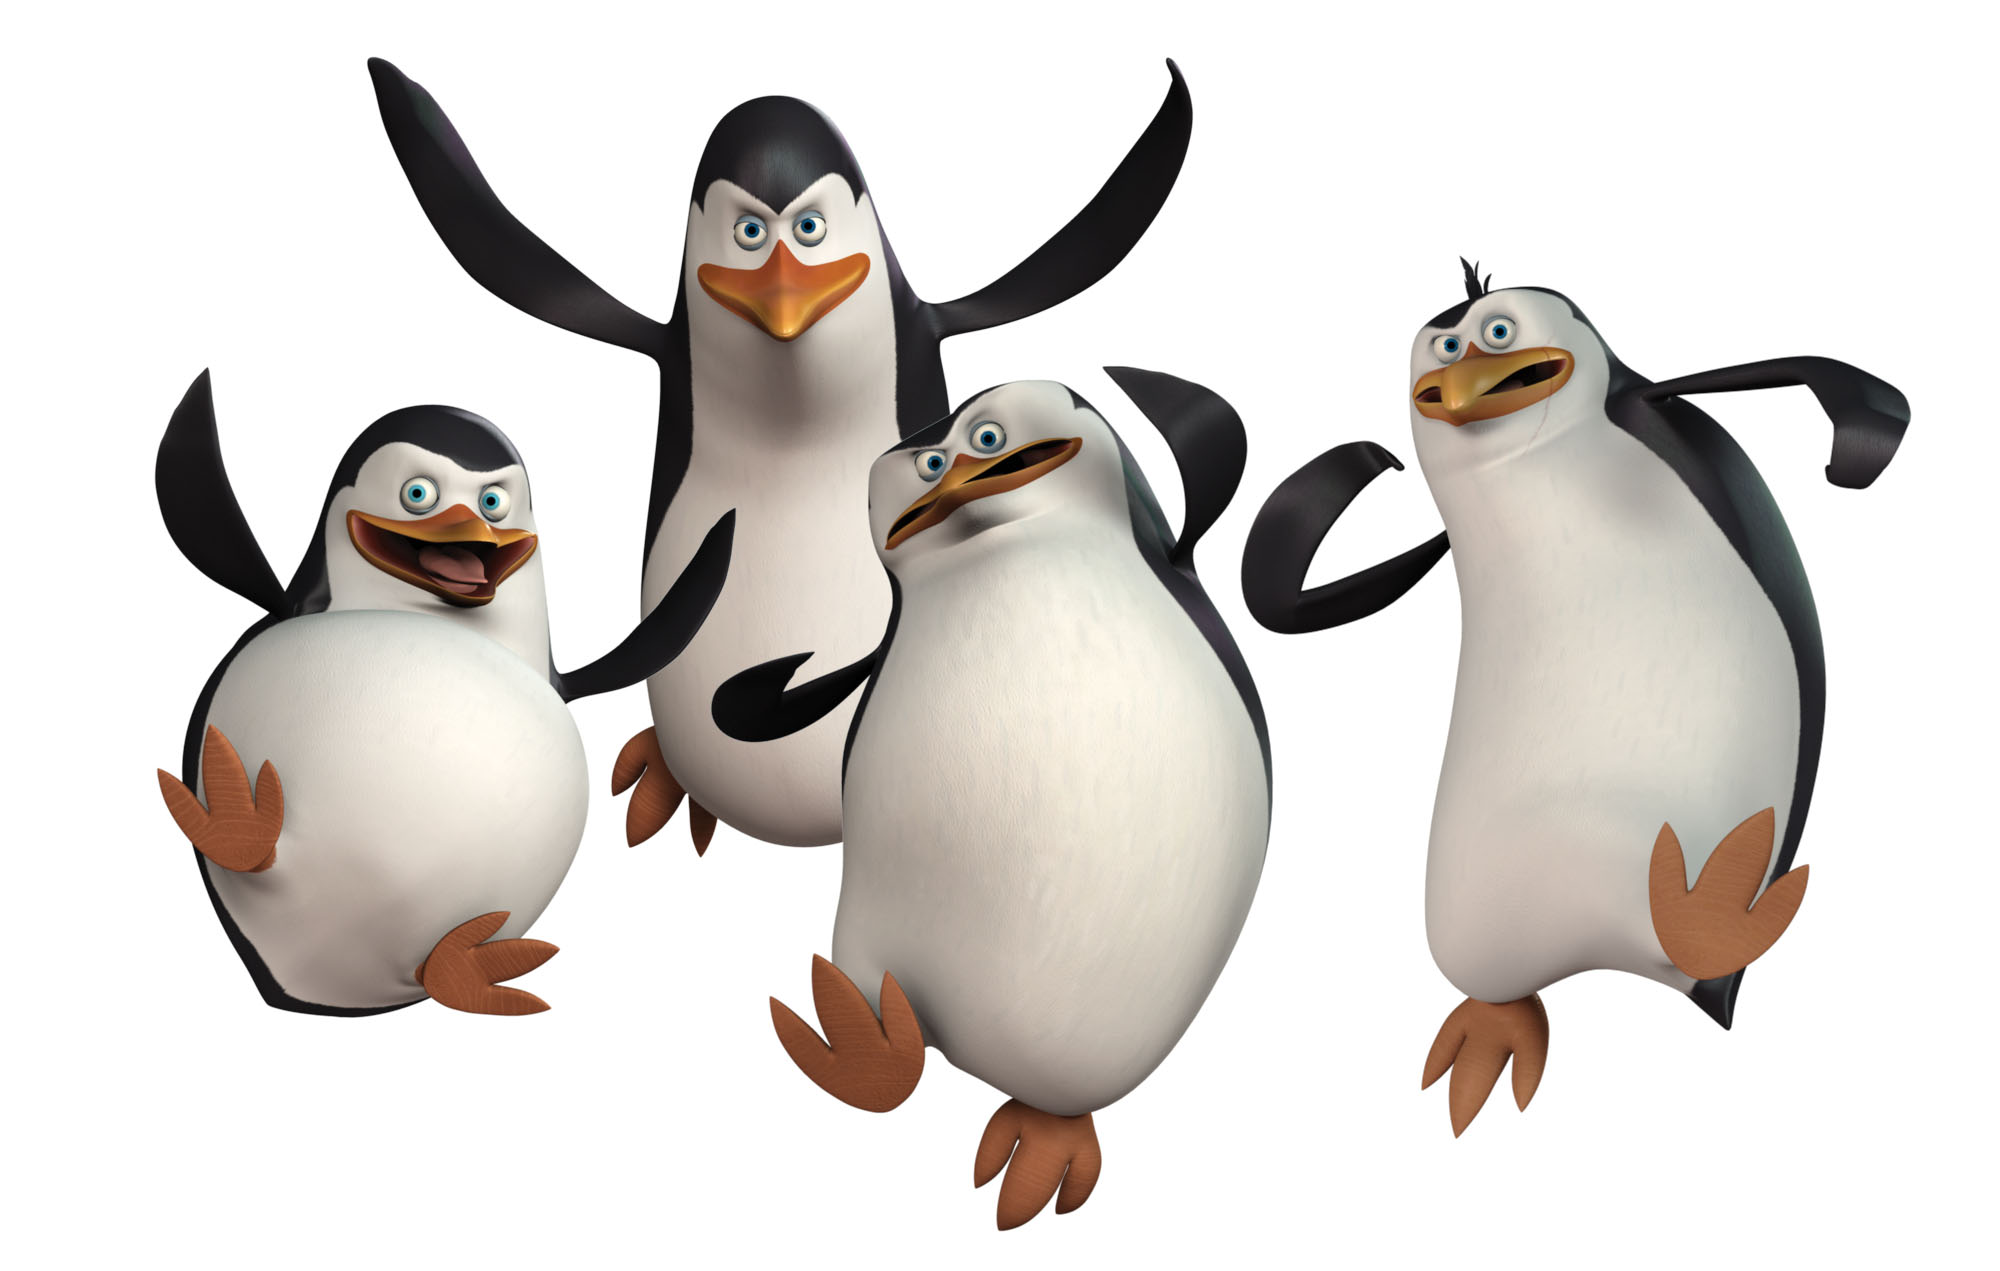 New Images! - Penguins of Madagascar Photo (23290189) - Fanpop